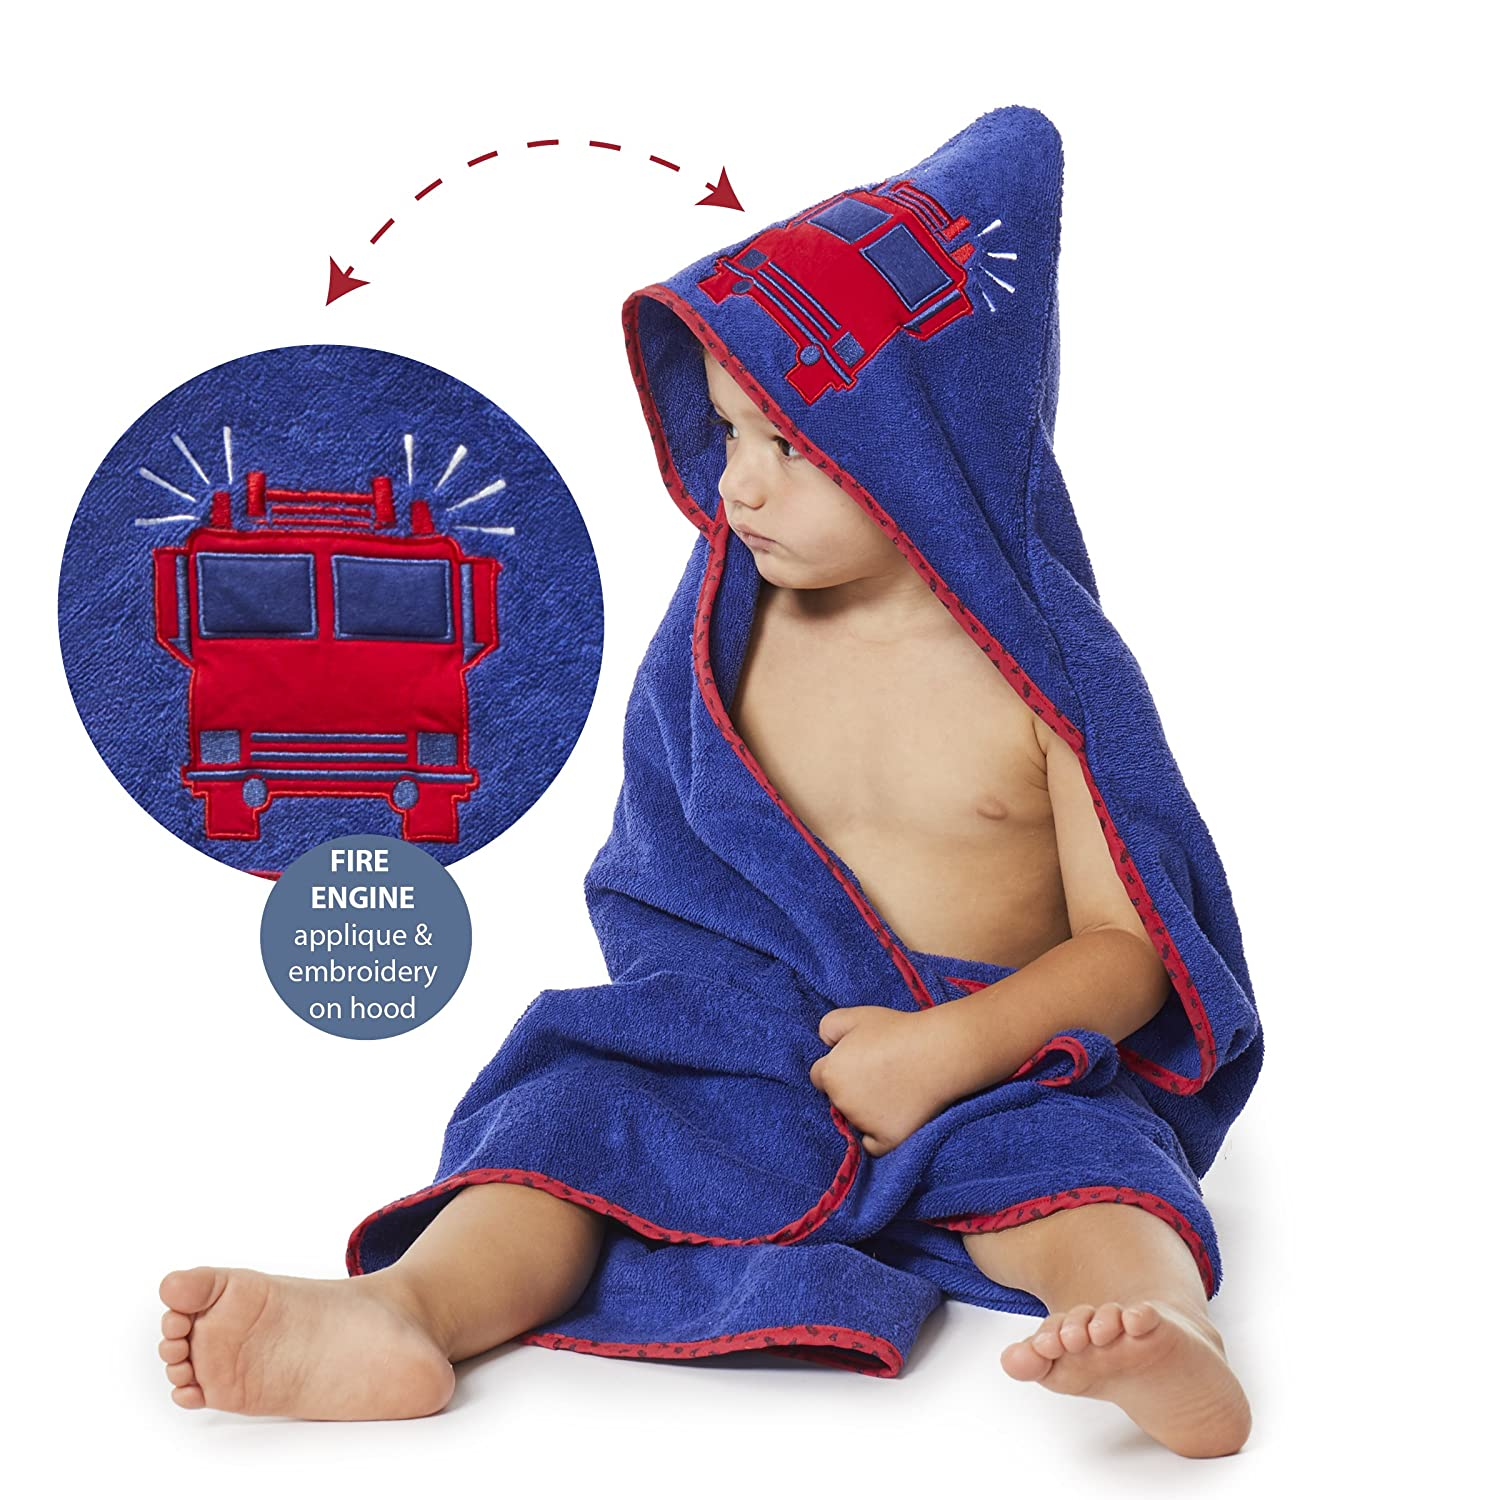 """Bluenido Boys Hooded Towel FIRE TRUCK Fire Engine 35"""" x 35"""" for Infants, Toddlers and Kids, Great for Gifts. Perfect for Bath, Pool and Beach. 100% Cotton"""